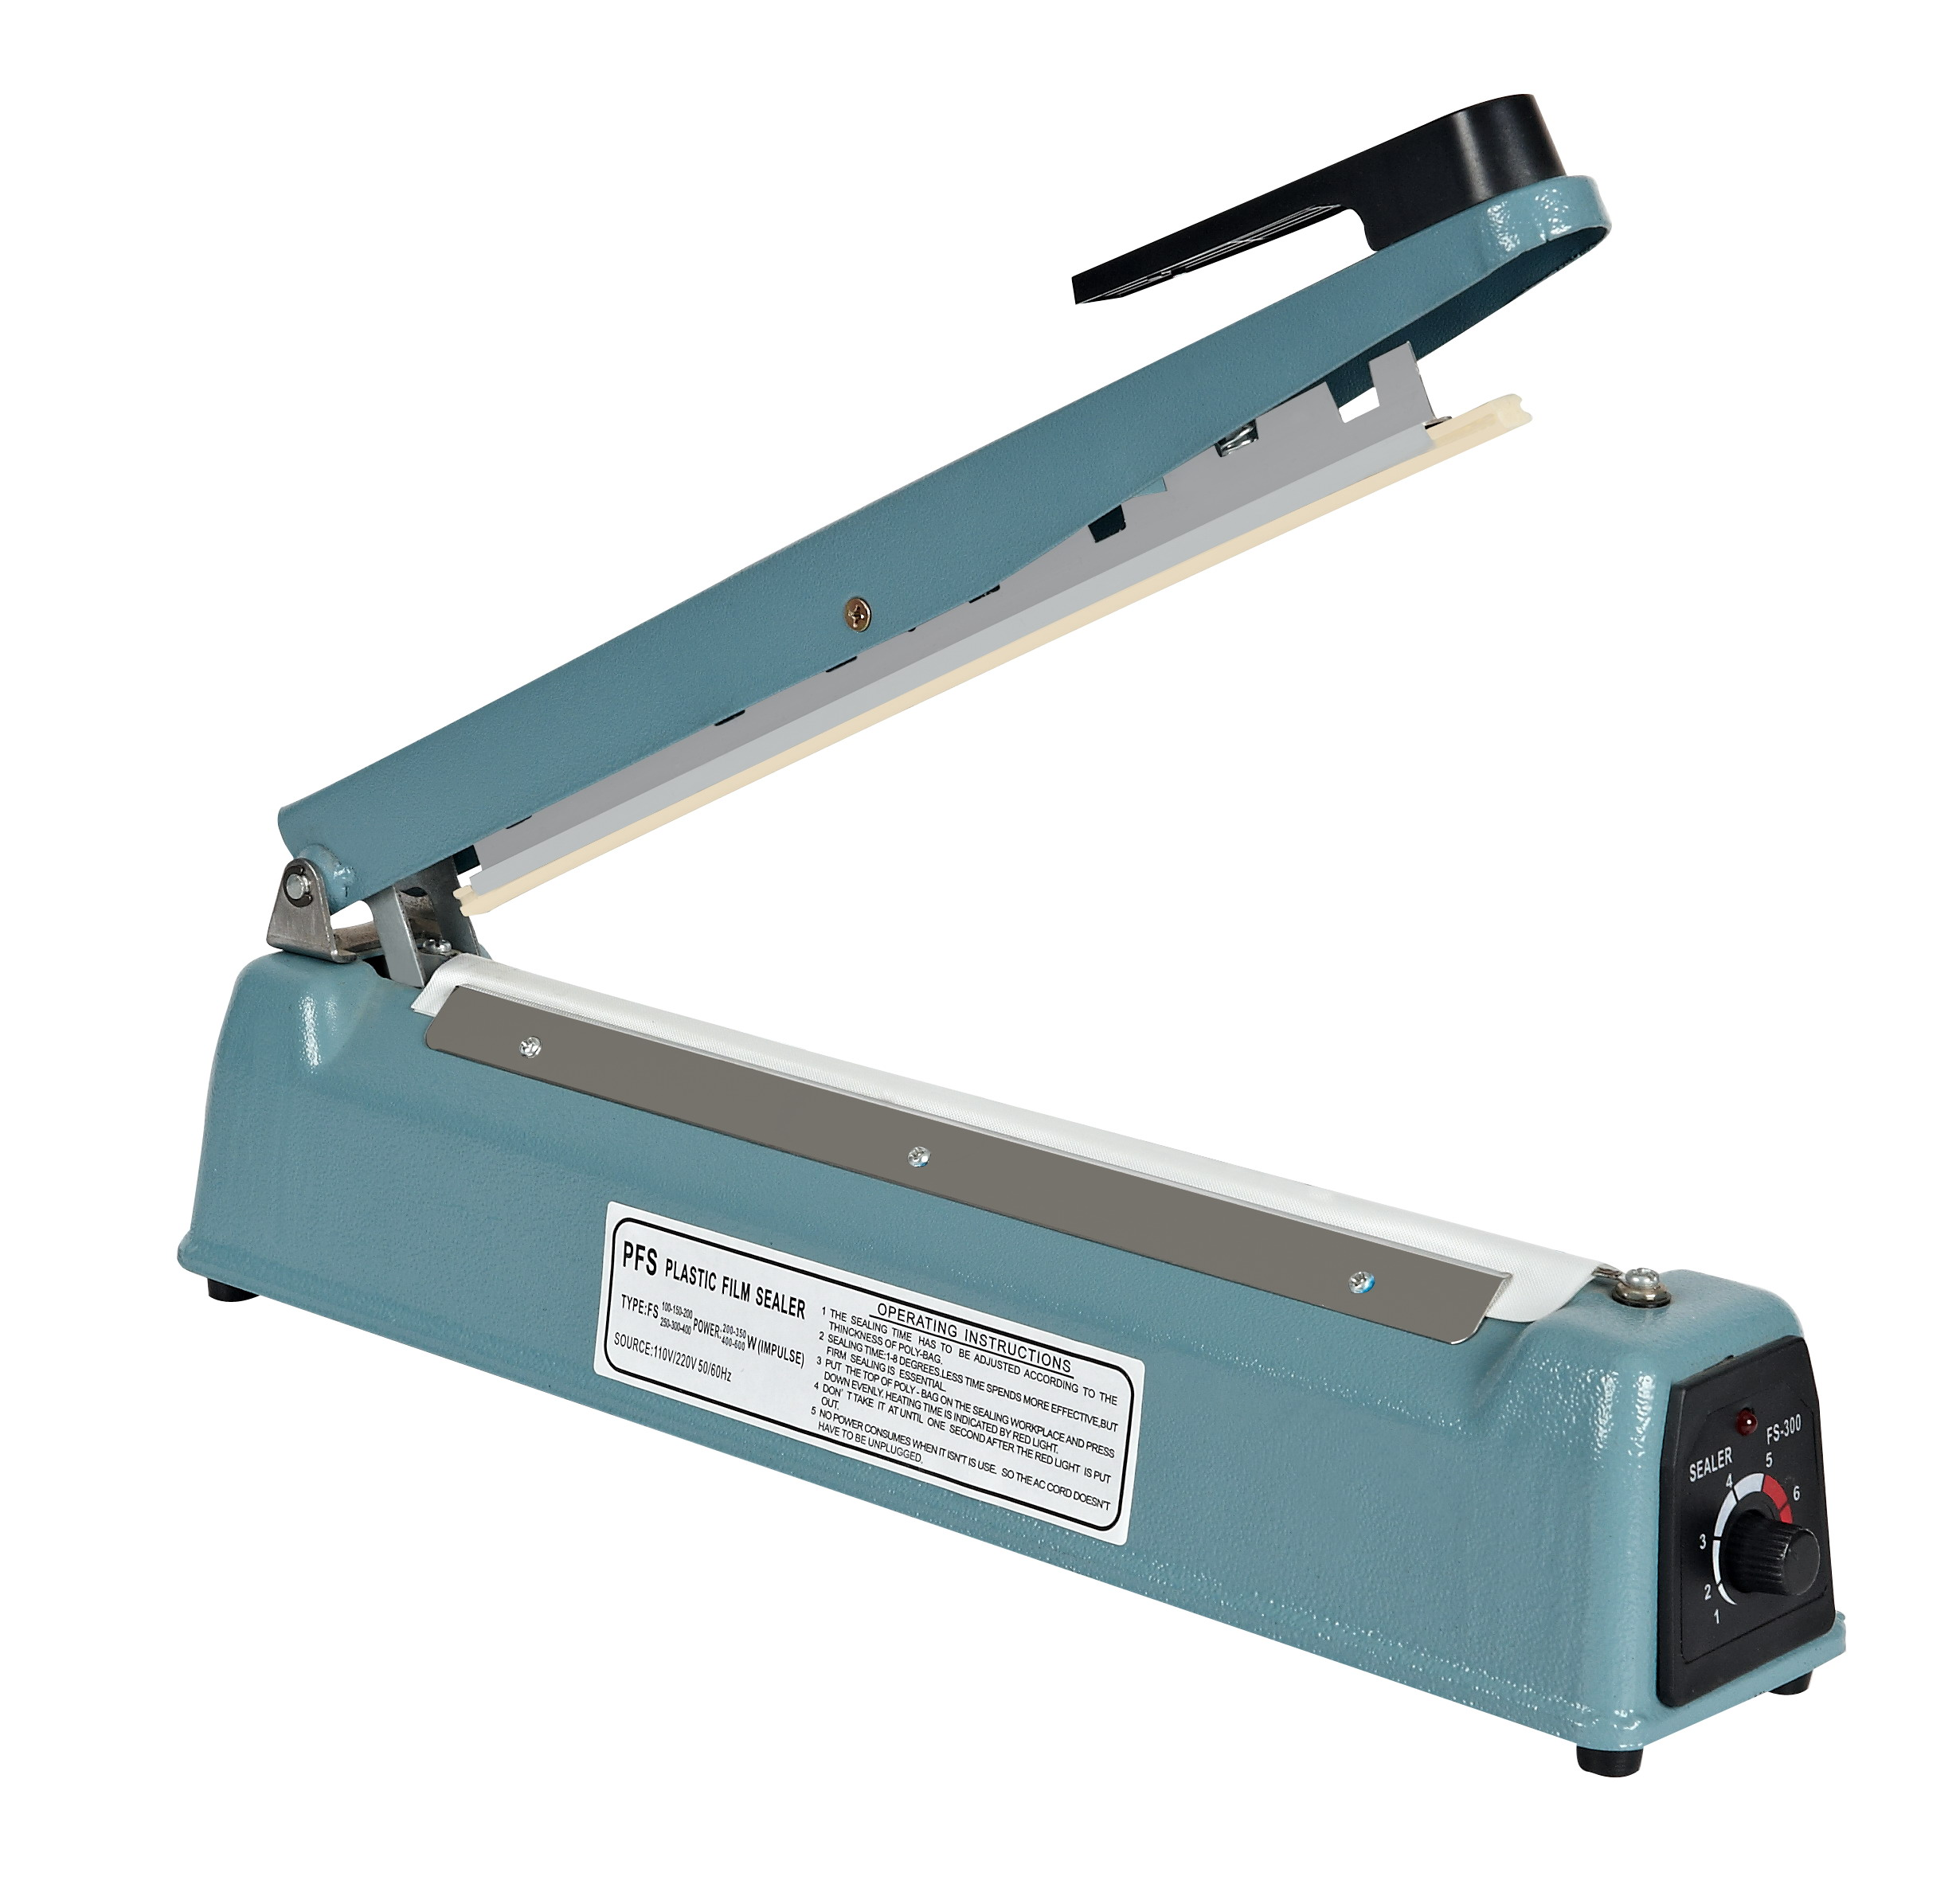 <strong>Impulse Sealing Plastic Film Sealer FS-300</strong>